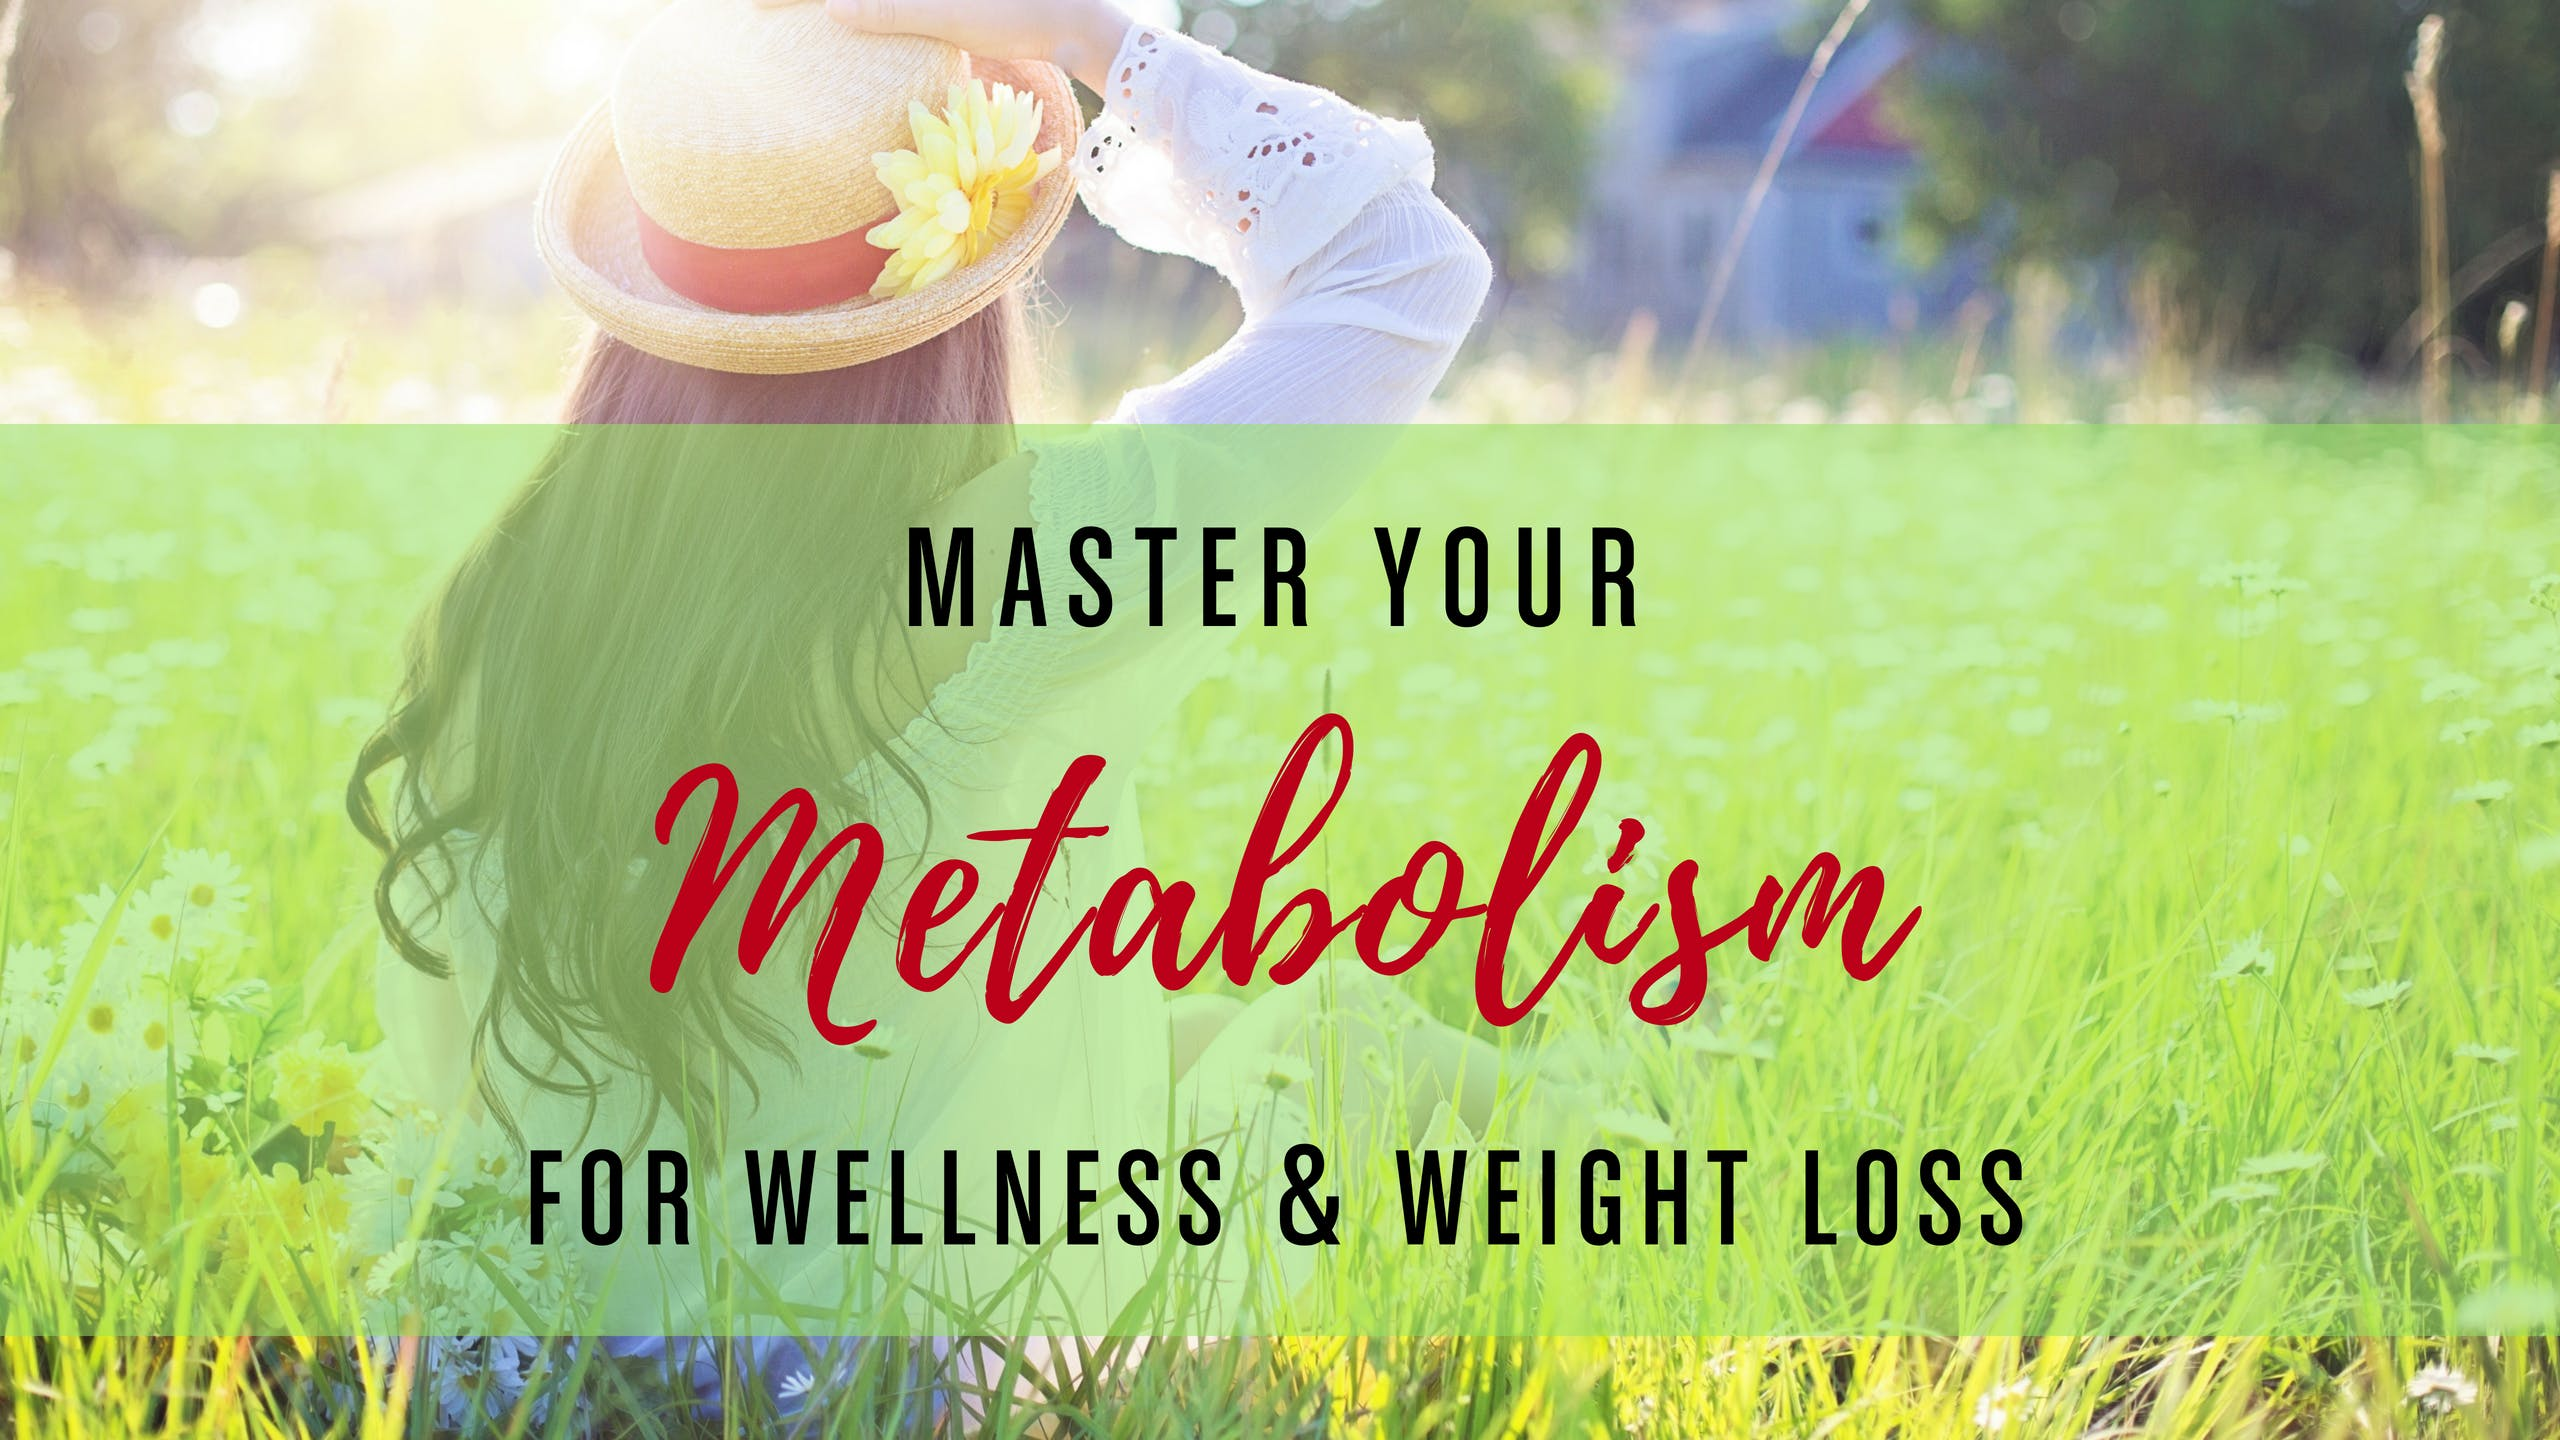 Master Your Metabolism for Wellness & Weight